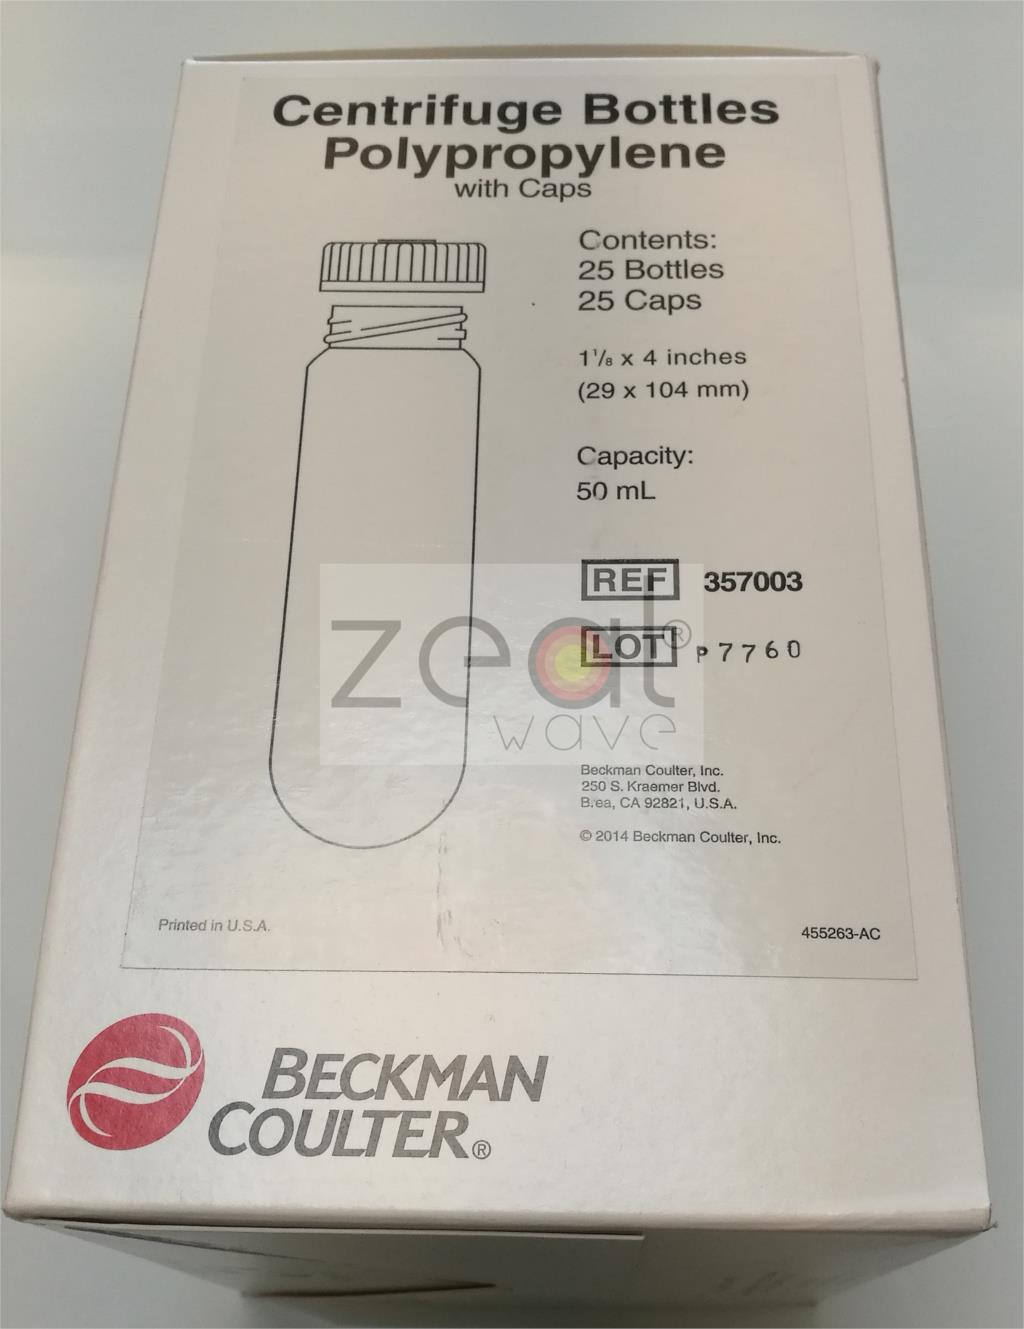 FOR Beckman Coulter Item No. 357003 50 mL Centrifugal bottle with sealing capFOR Beckman Coulter Item No. 357003 50 mL Centrifugal bottle with sealing cap